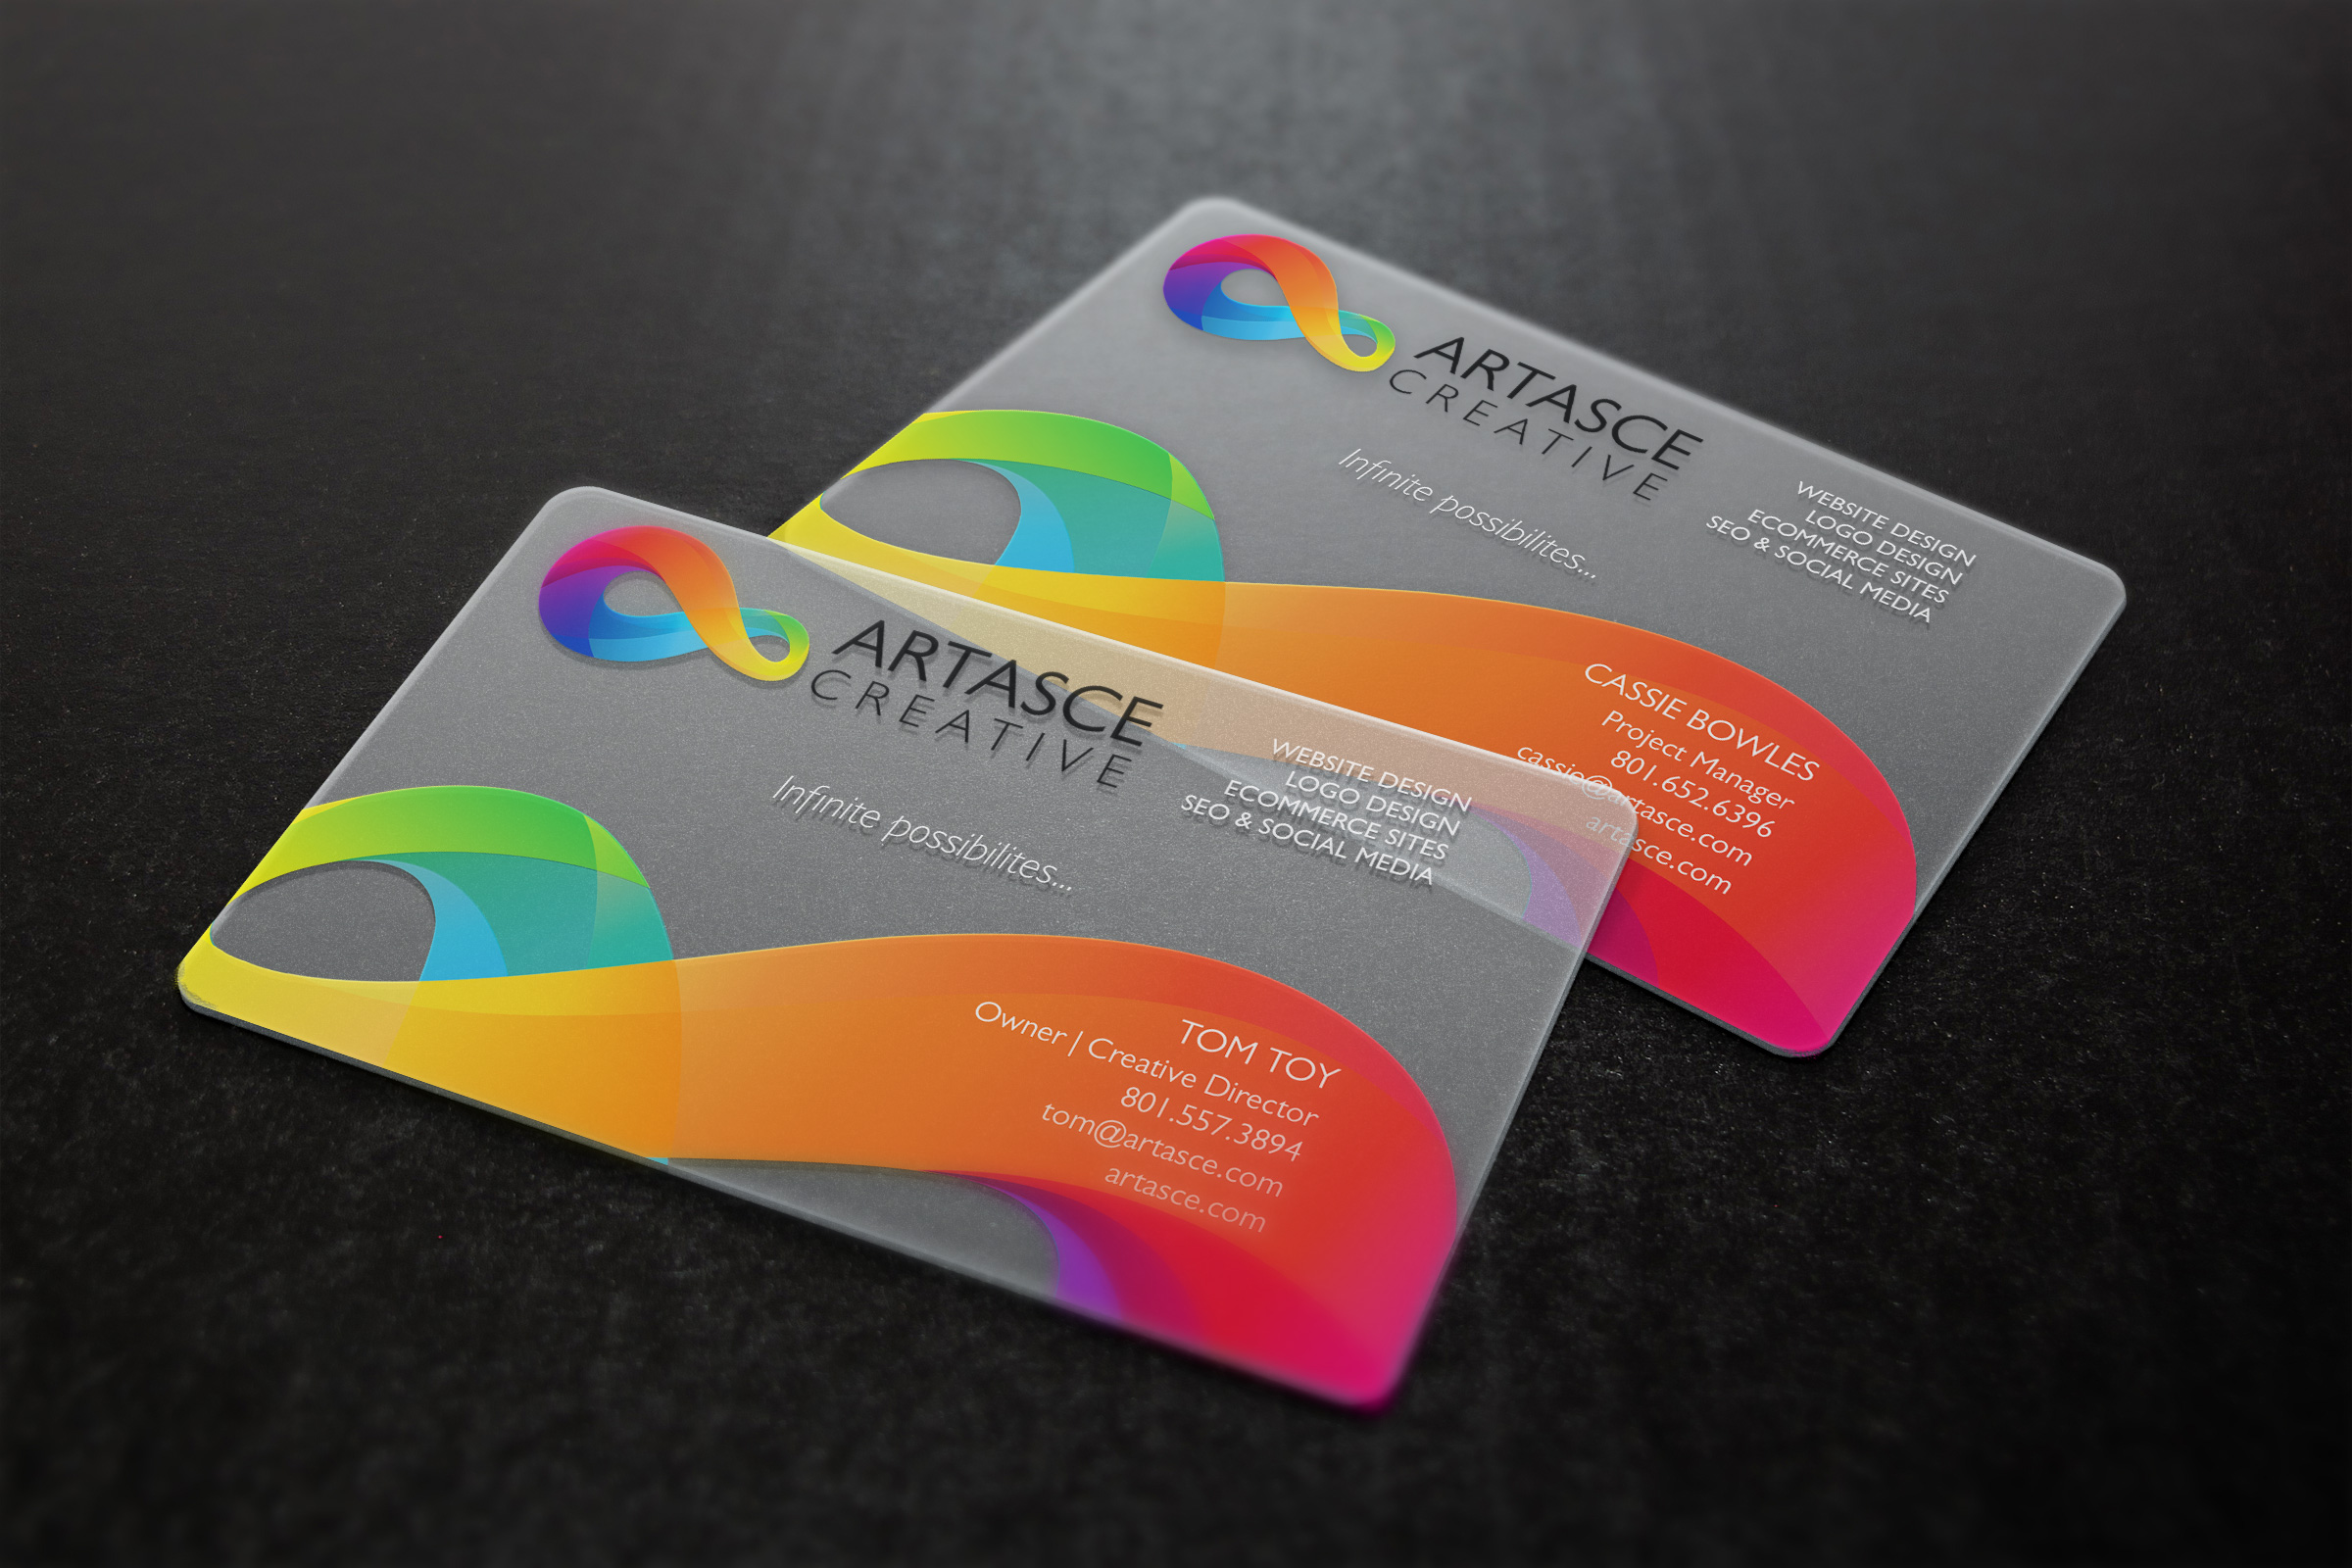 Custom Card Template buisness cards : Clear Plastic Business Cards - Artasce Creative